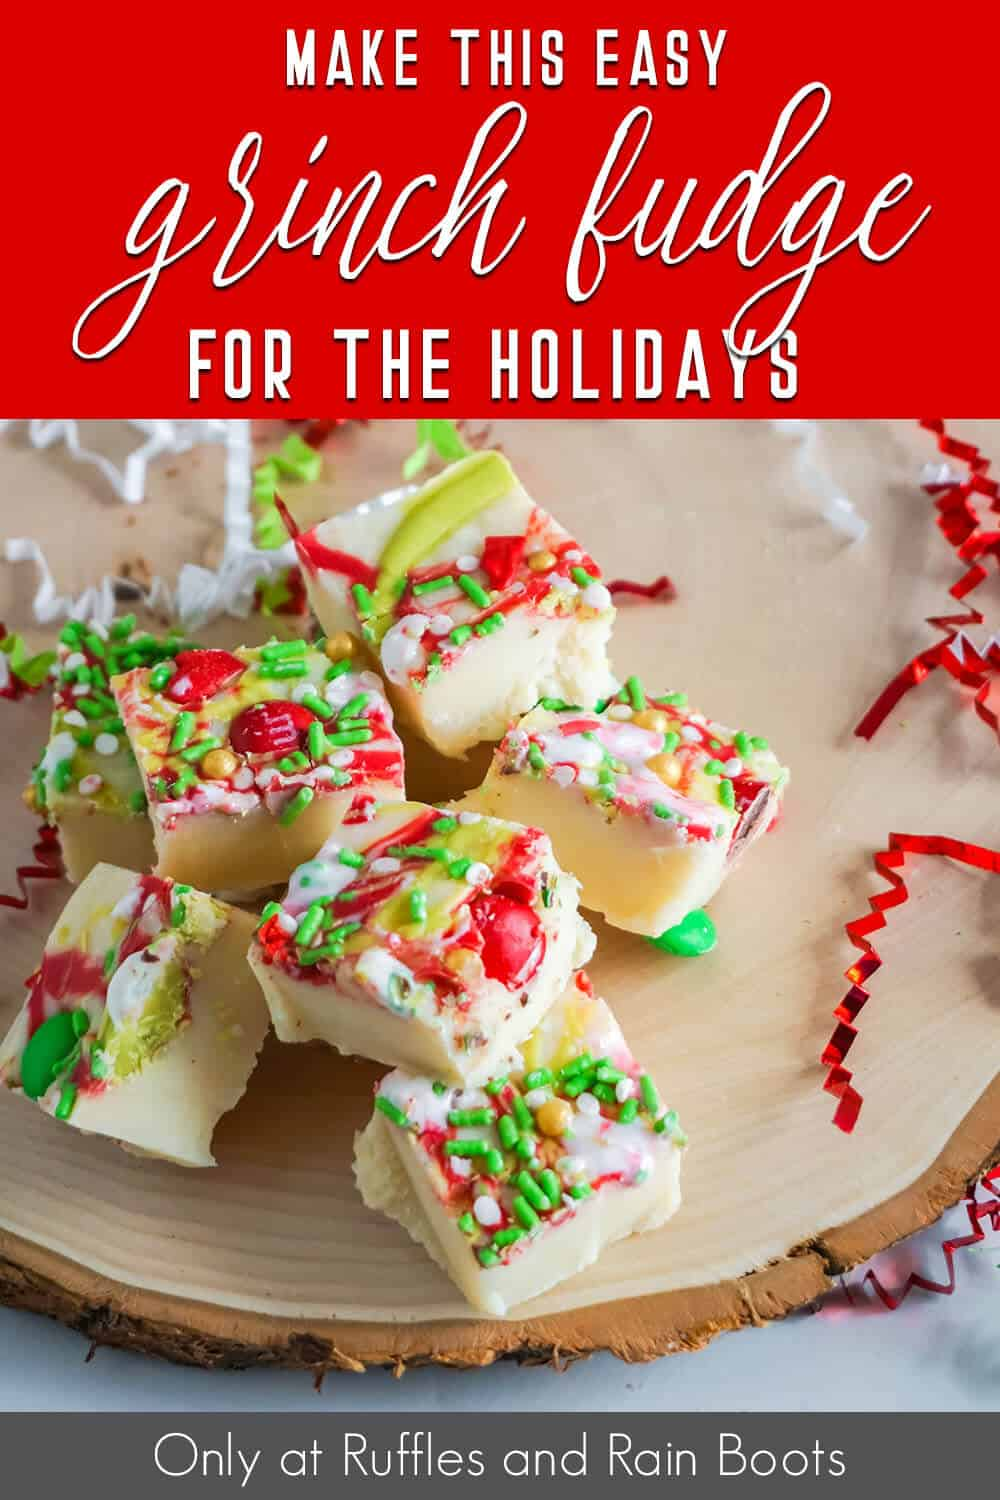 grinch movie night fudge recipe with text which reads make this easy grinch fudge for the holidays